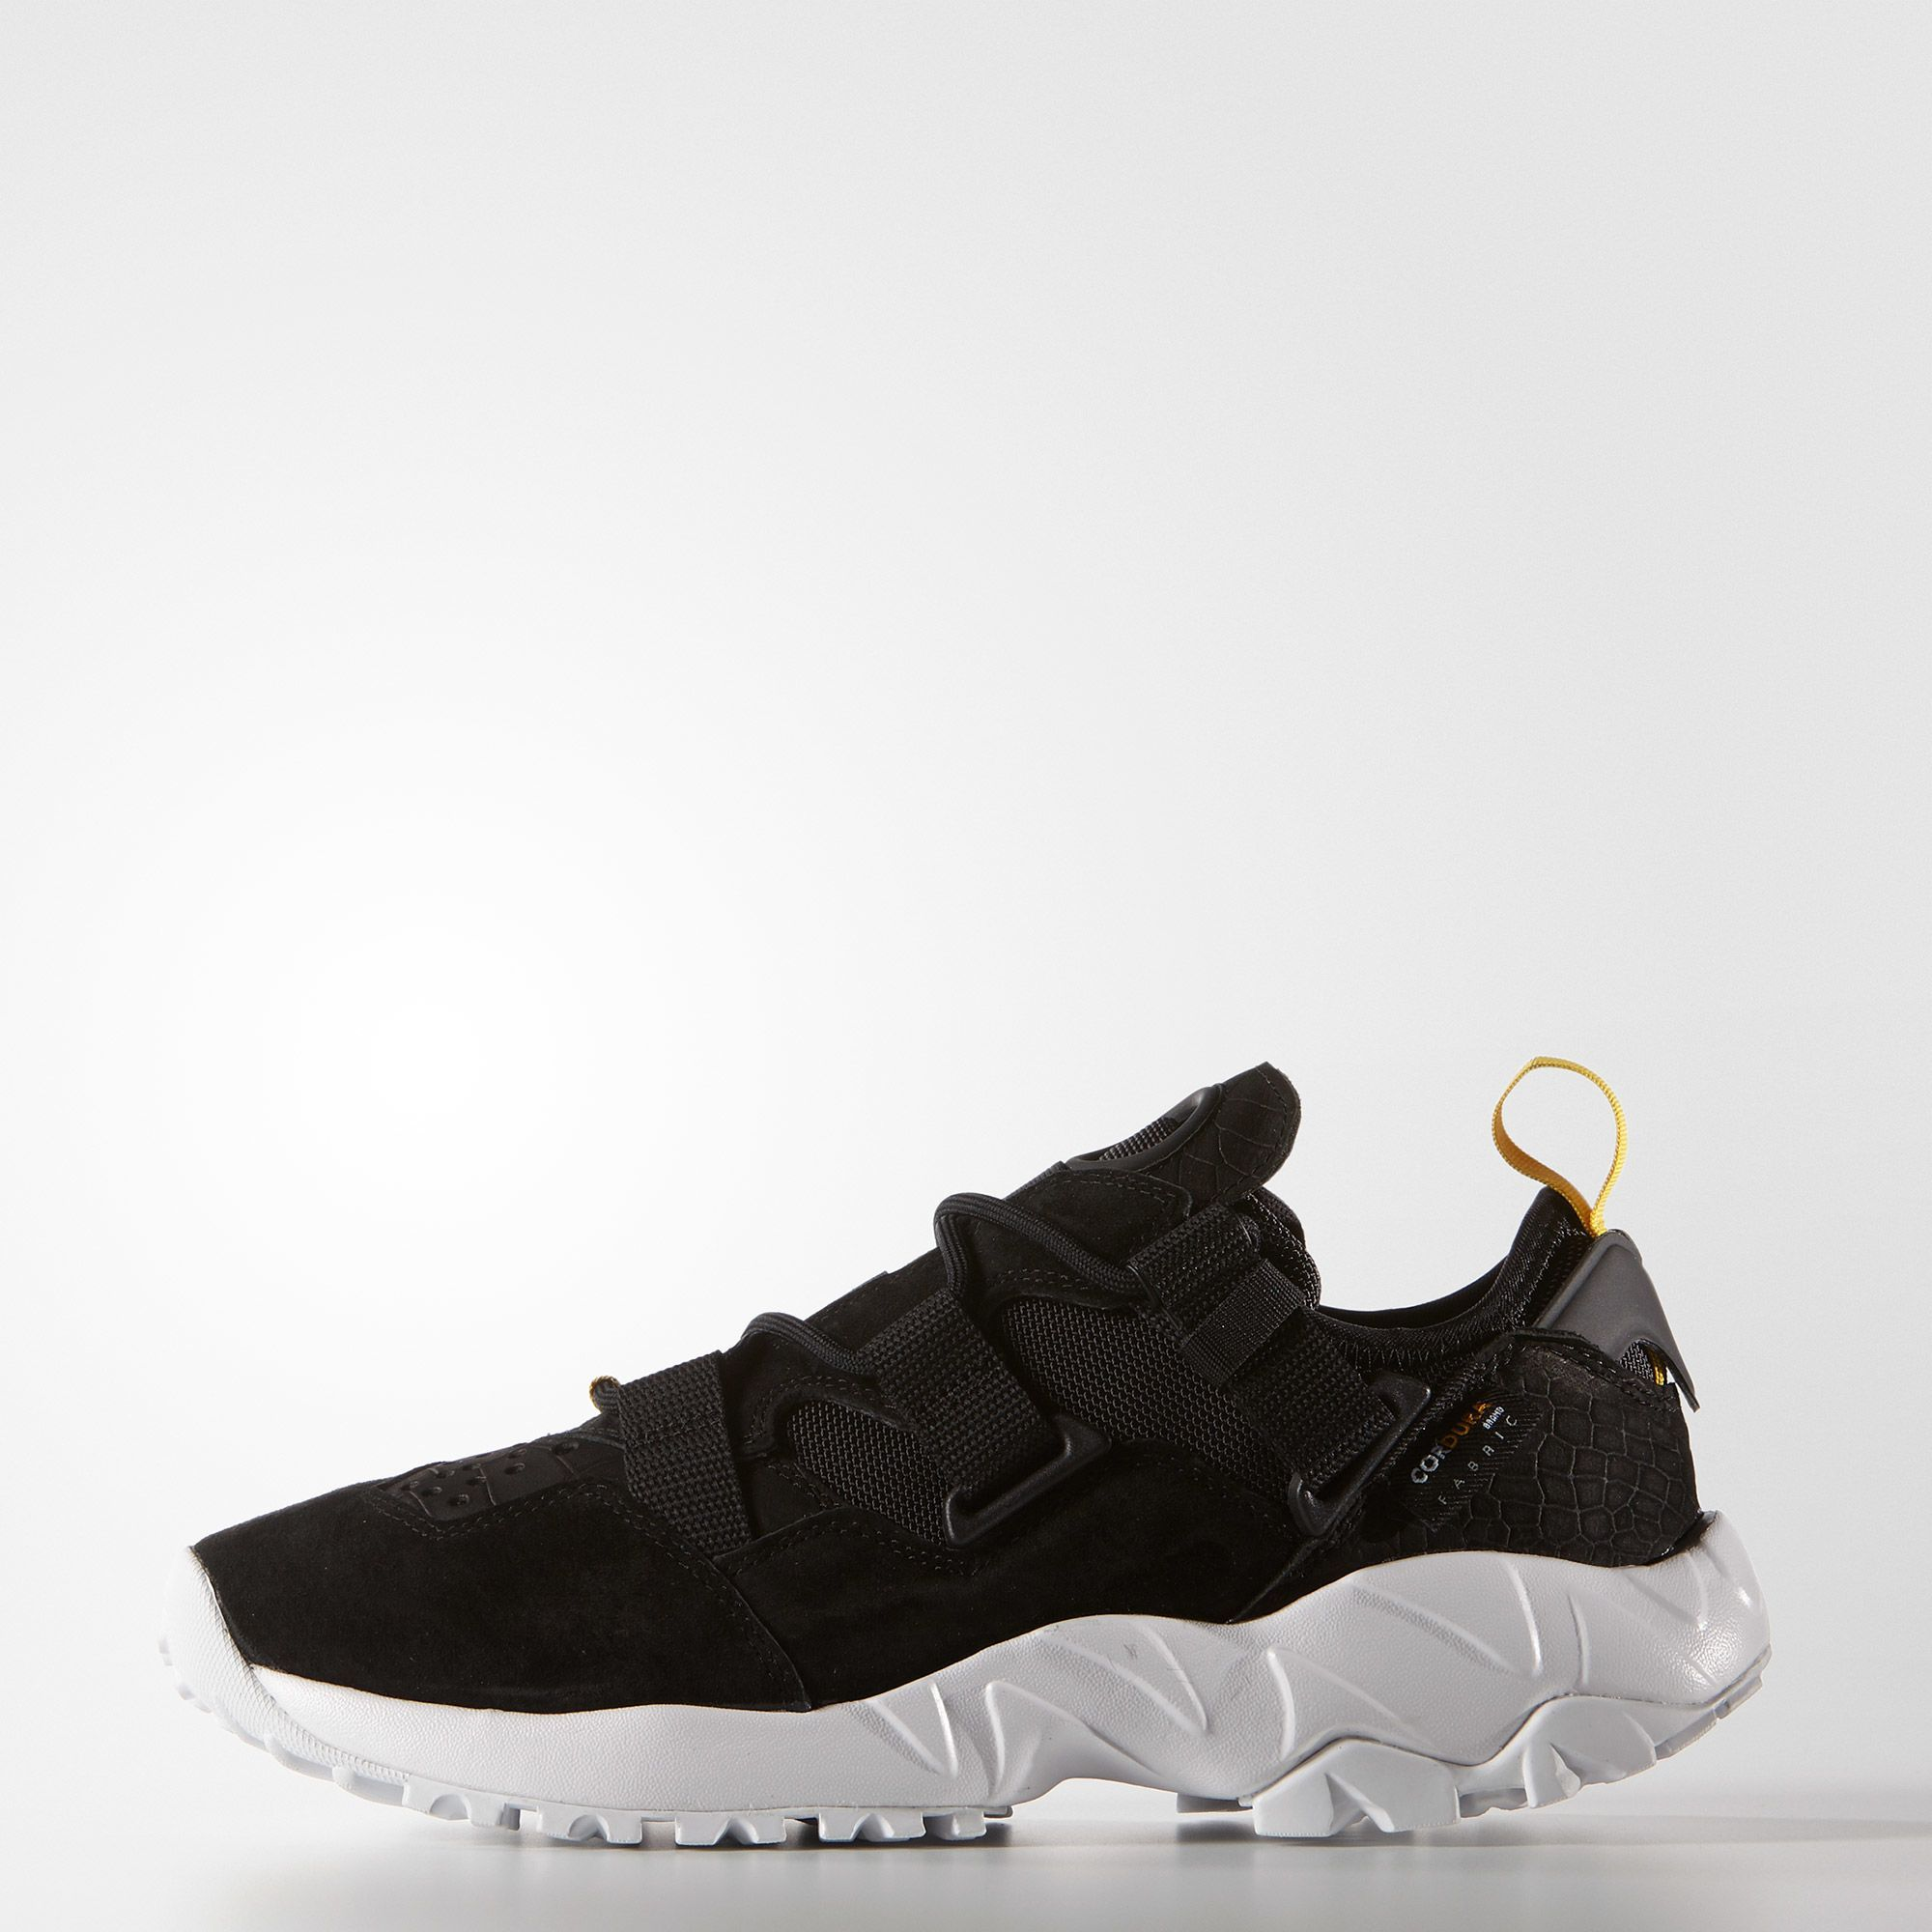 adidas EQT Adventure Shoes - Black | adidas Europe/Africa